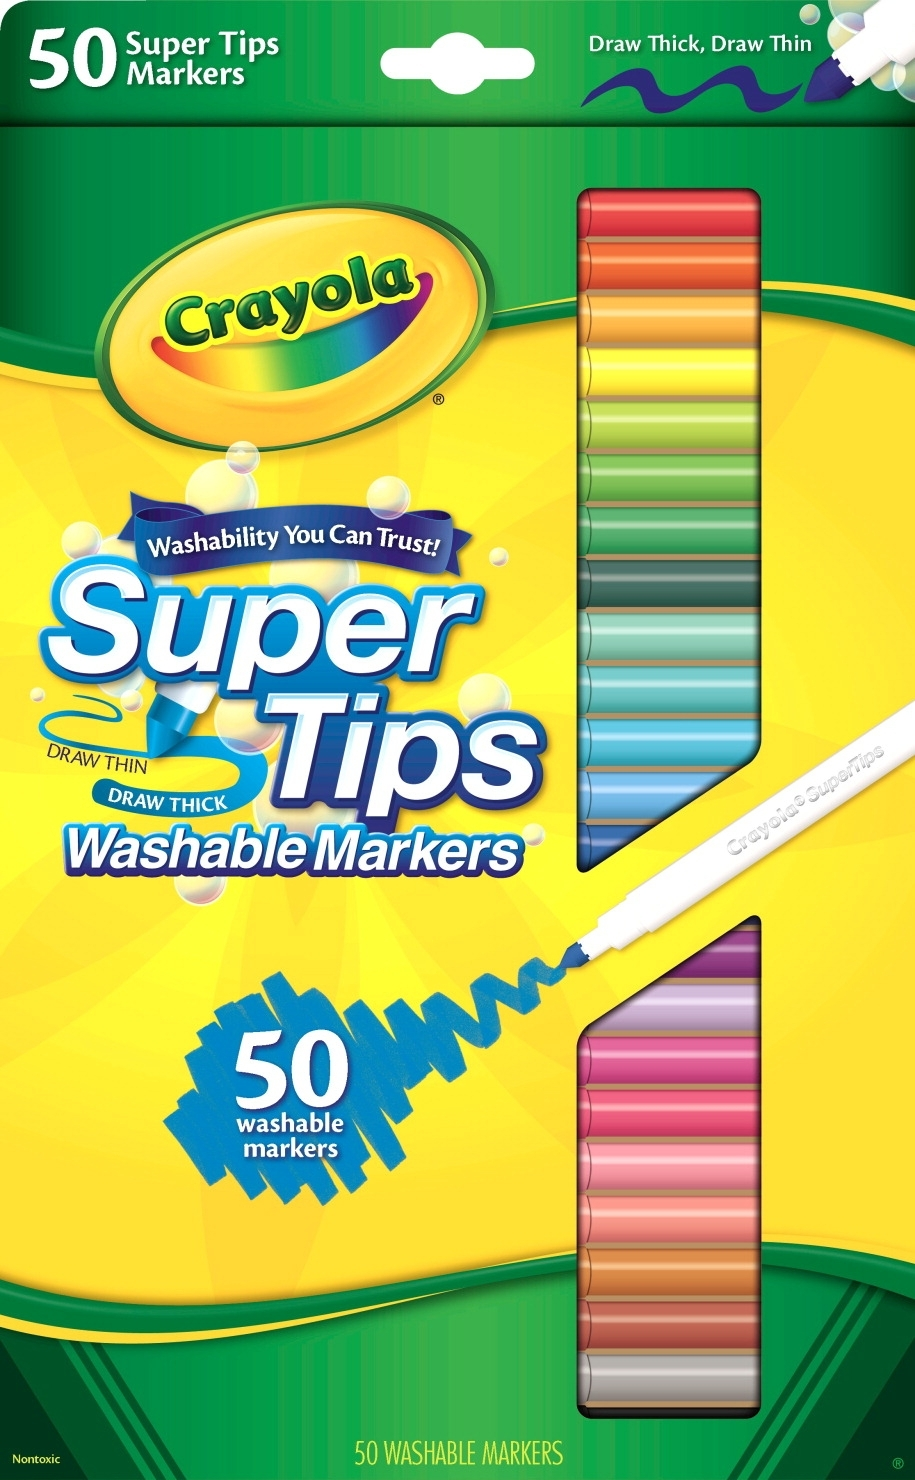 Learning: Supplies Drawing Markers Washable Markers - 410485 - Crayola Non-toxic Washable Marker Set With 12 Scented Markers; Super Tip; Assorted Colors; Set Of 50 410485